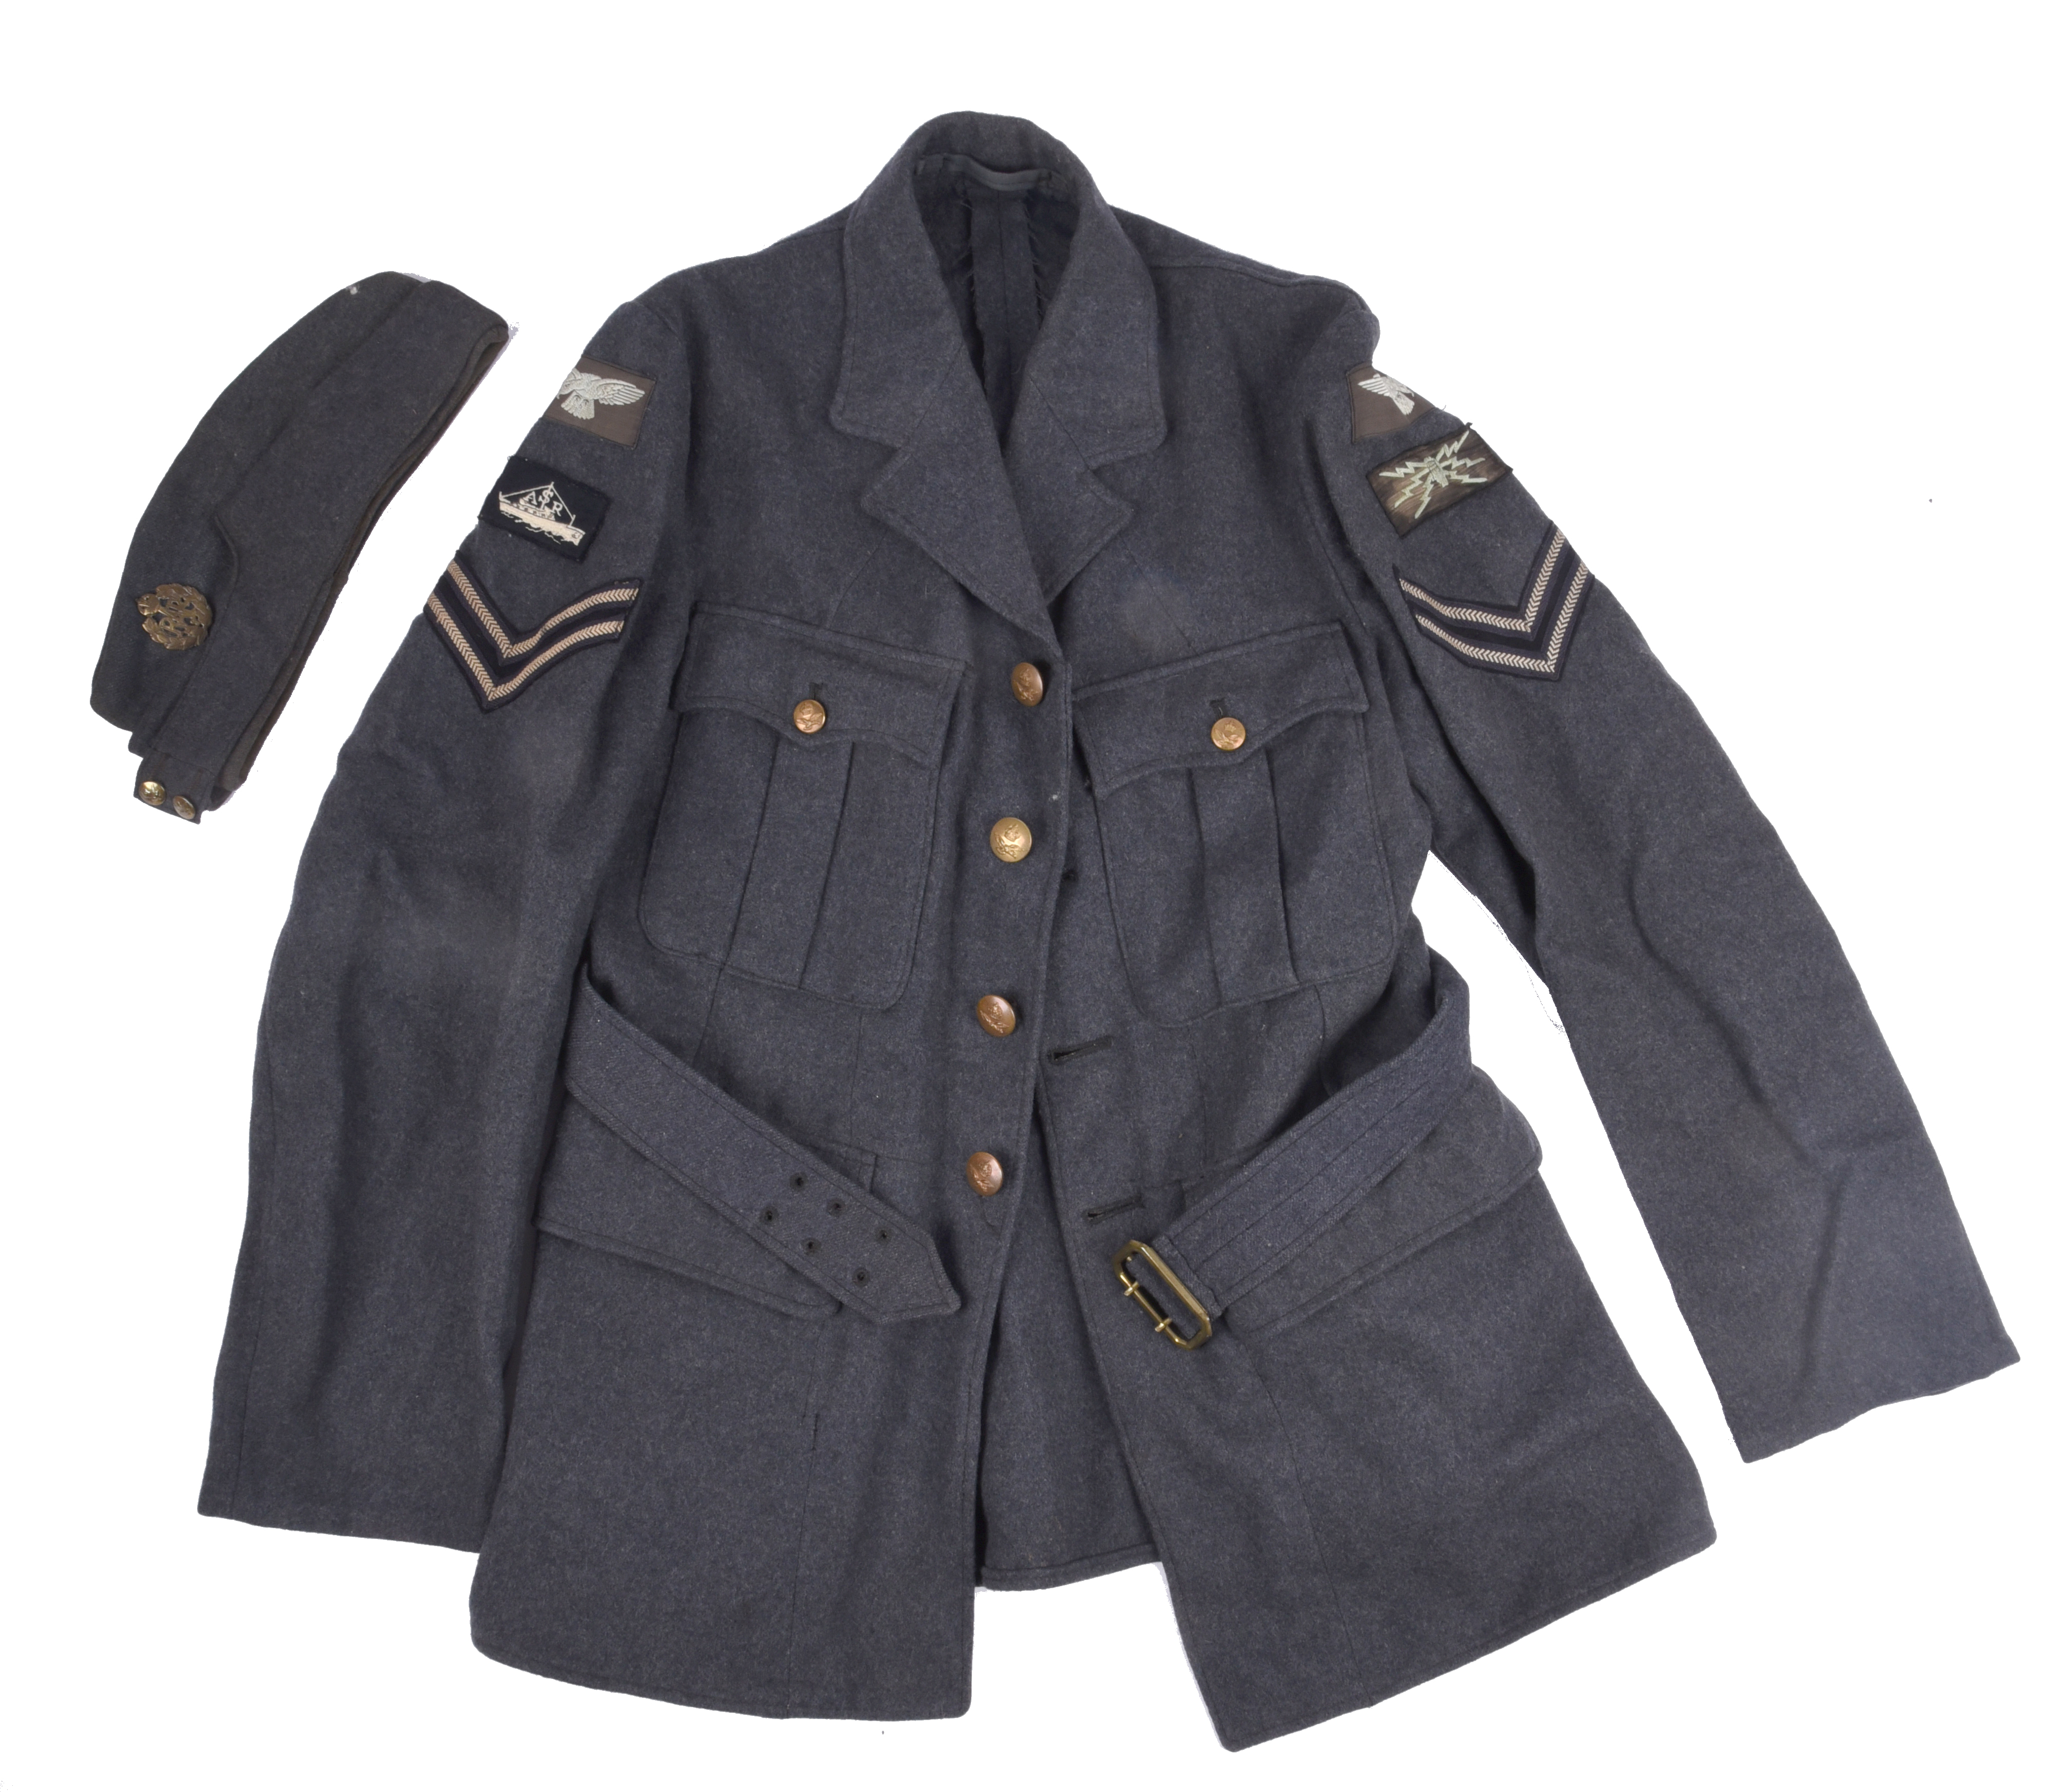 A scarce Second World War Air Sea Rescue corporal's jacket, with fabric insignia including